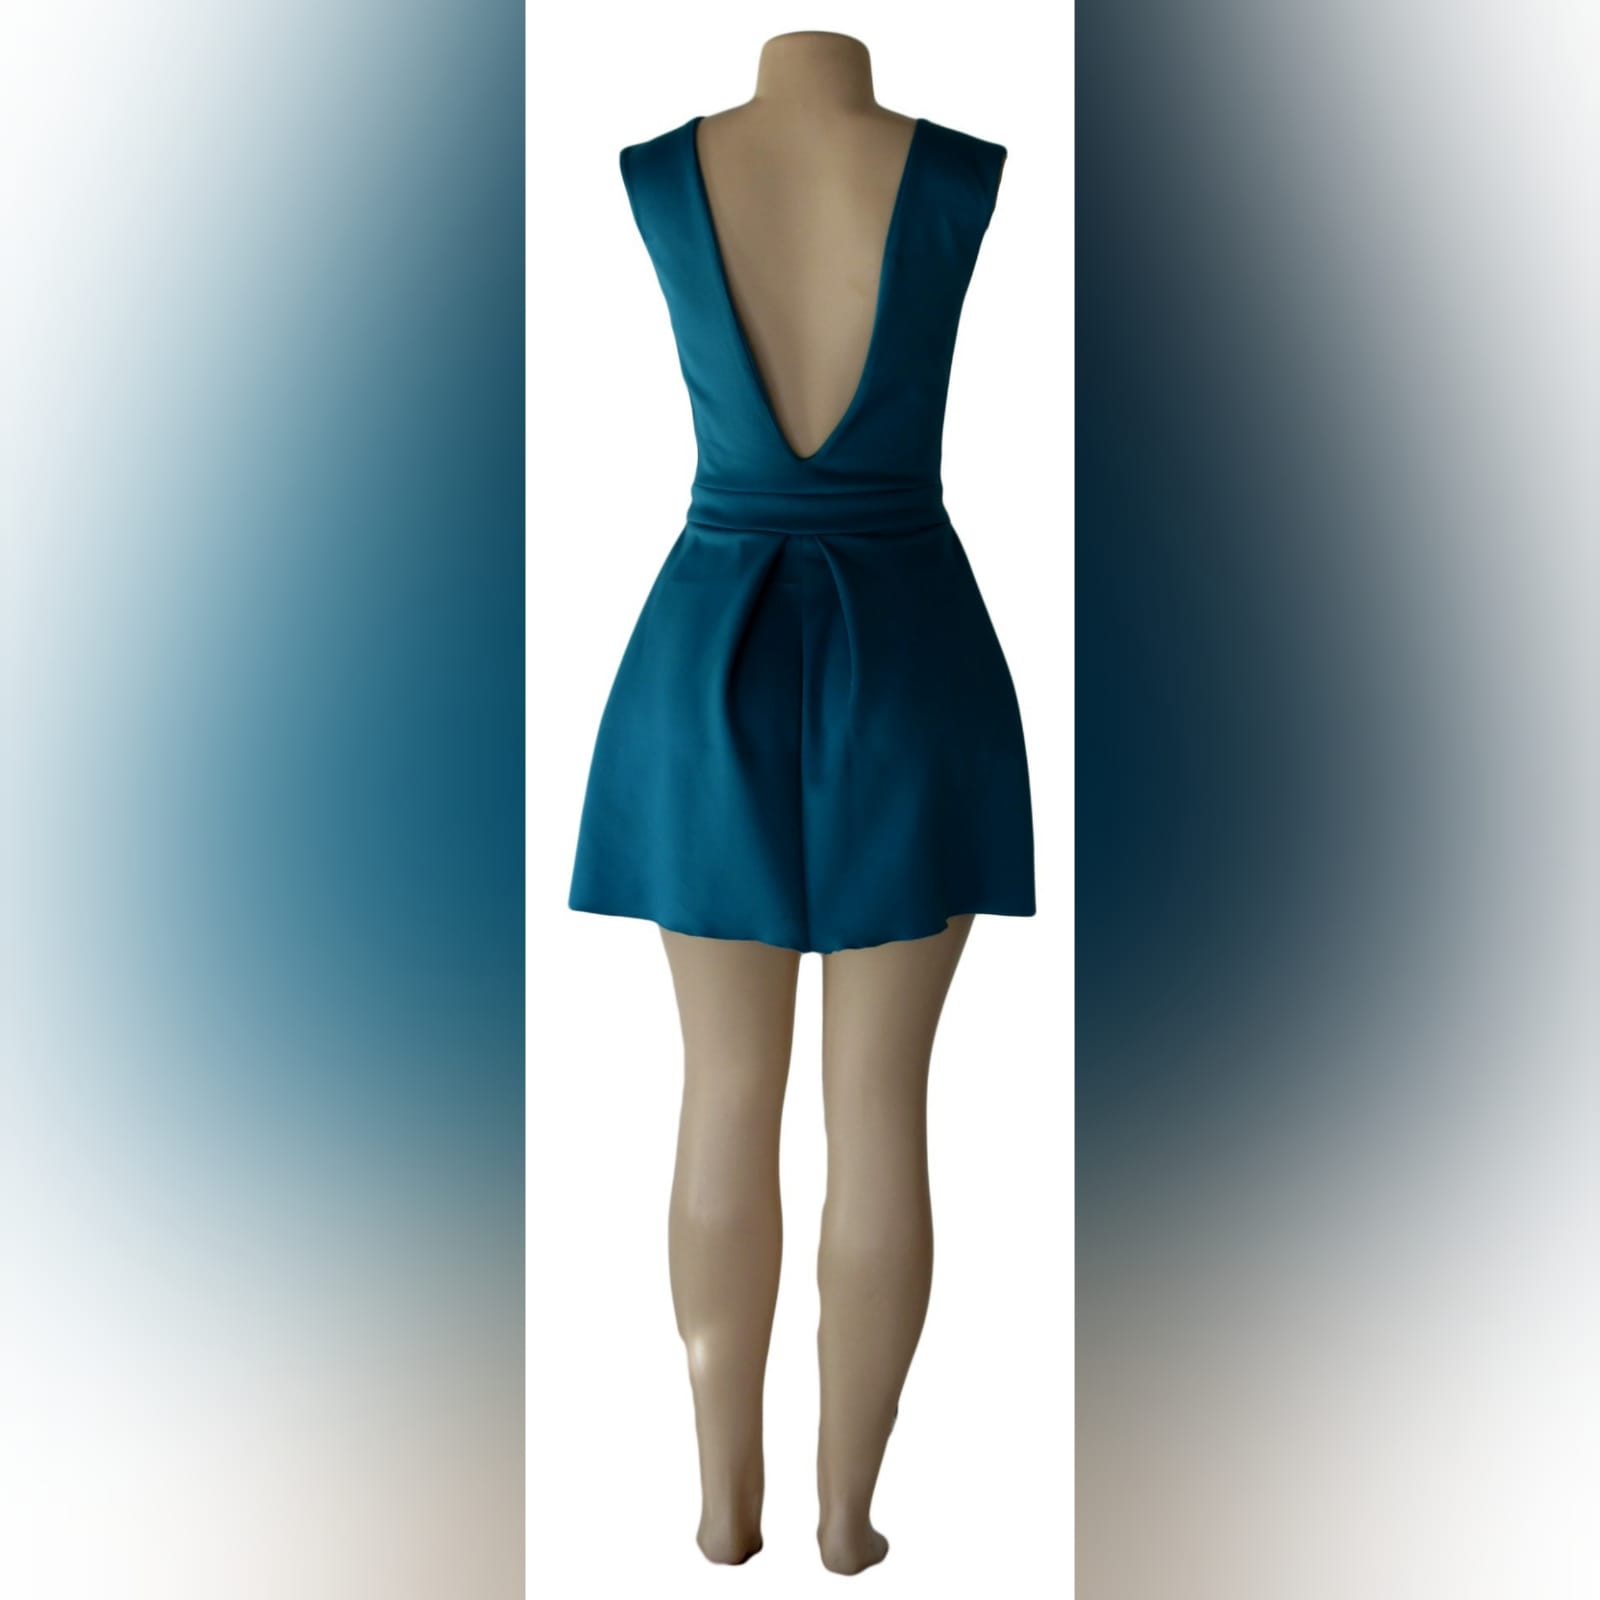 Turquoise green short smart casual dress 2 turquoise green short smart casual dress with a v neckline in front and a low v open back, with a waistband, and wide pleats on the bottom.